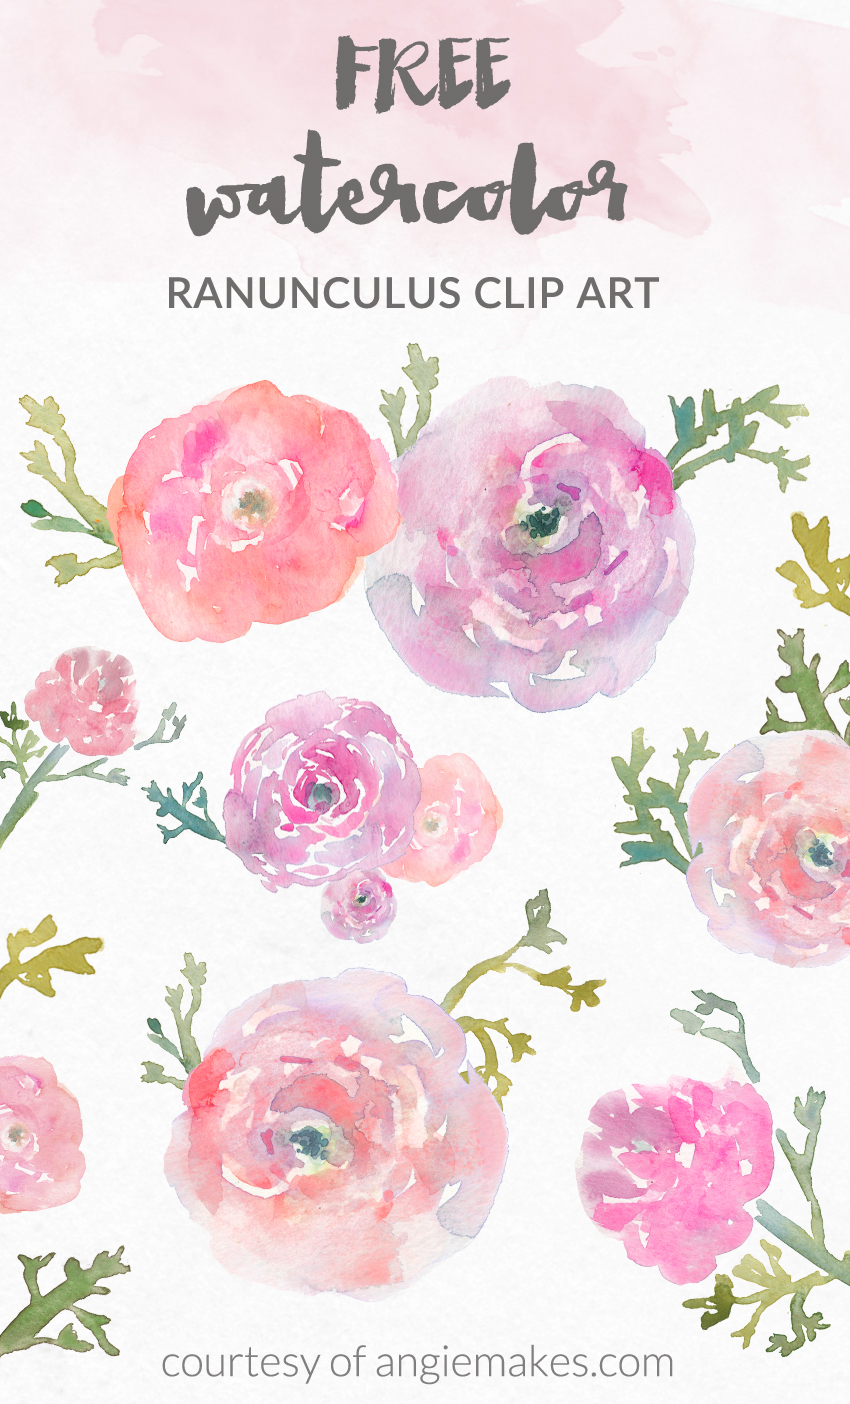 Free Watercolor Flower Clip Art - Watercolor Ranunculus by Angie Makes | angiemakes clipartall.com